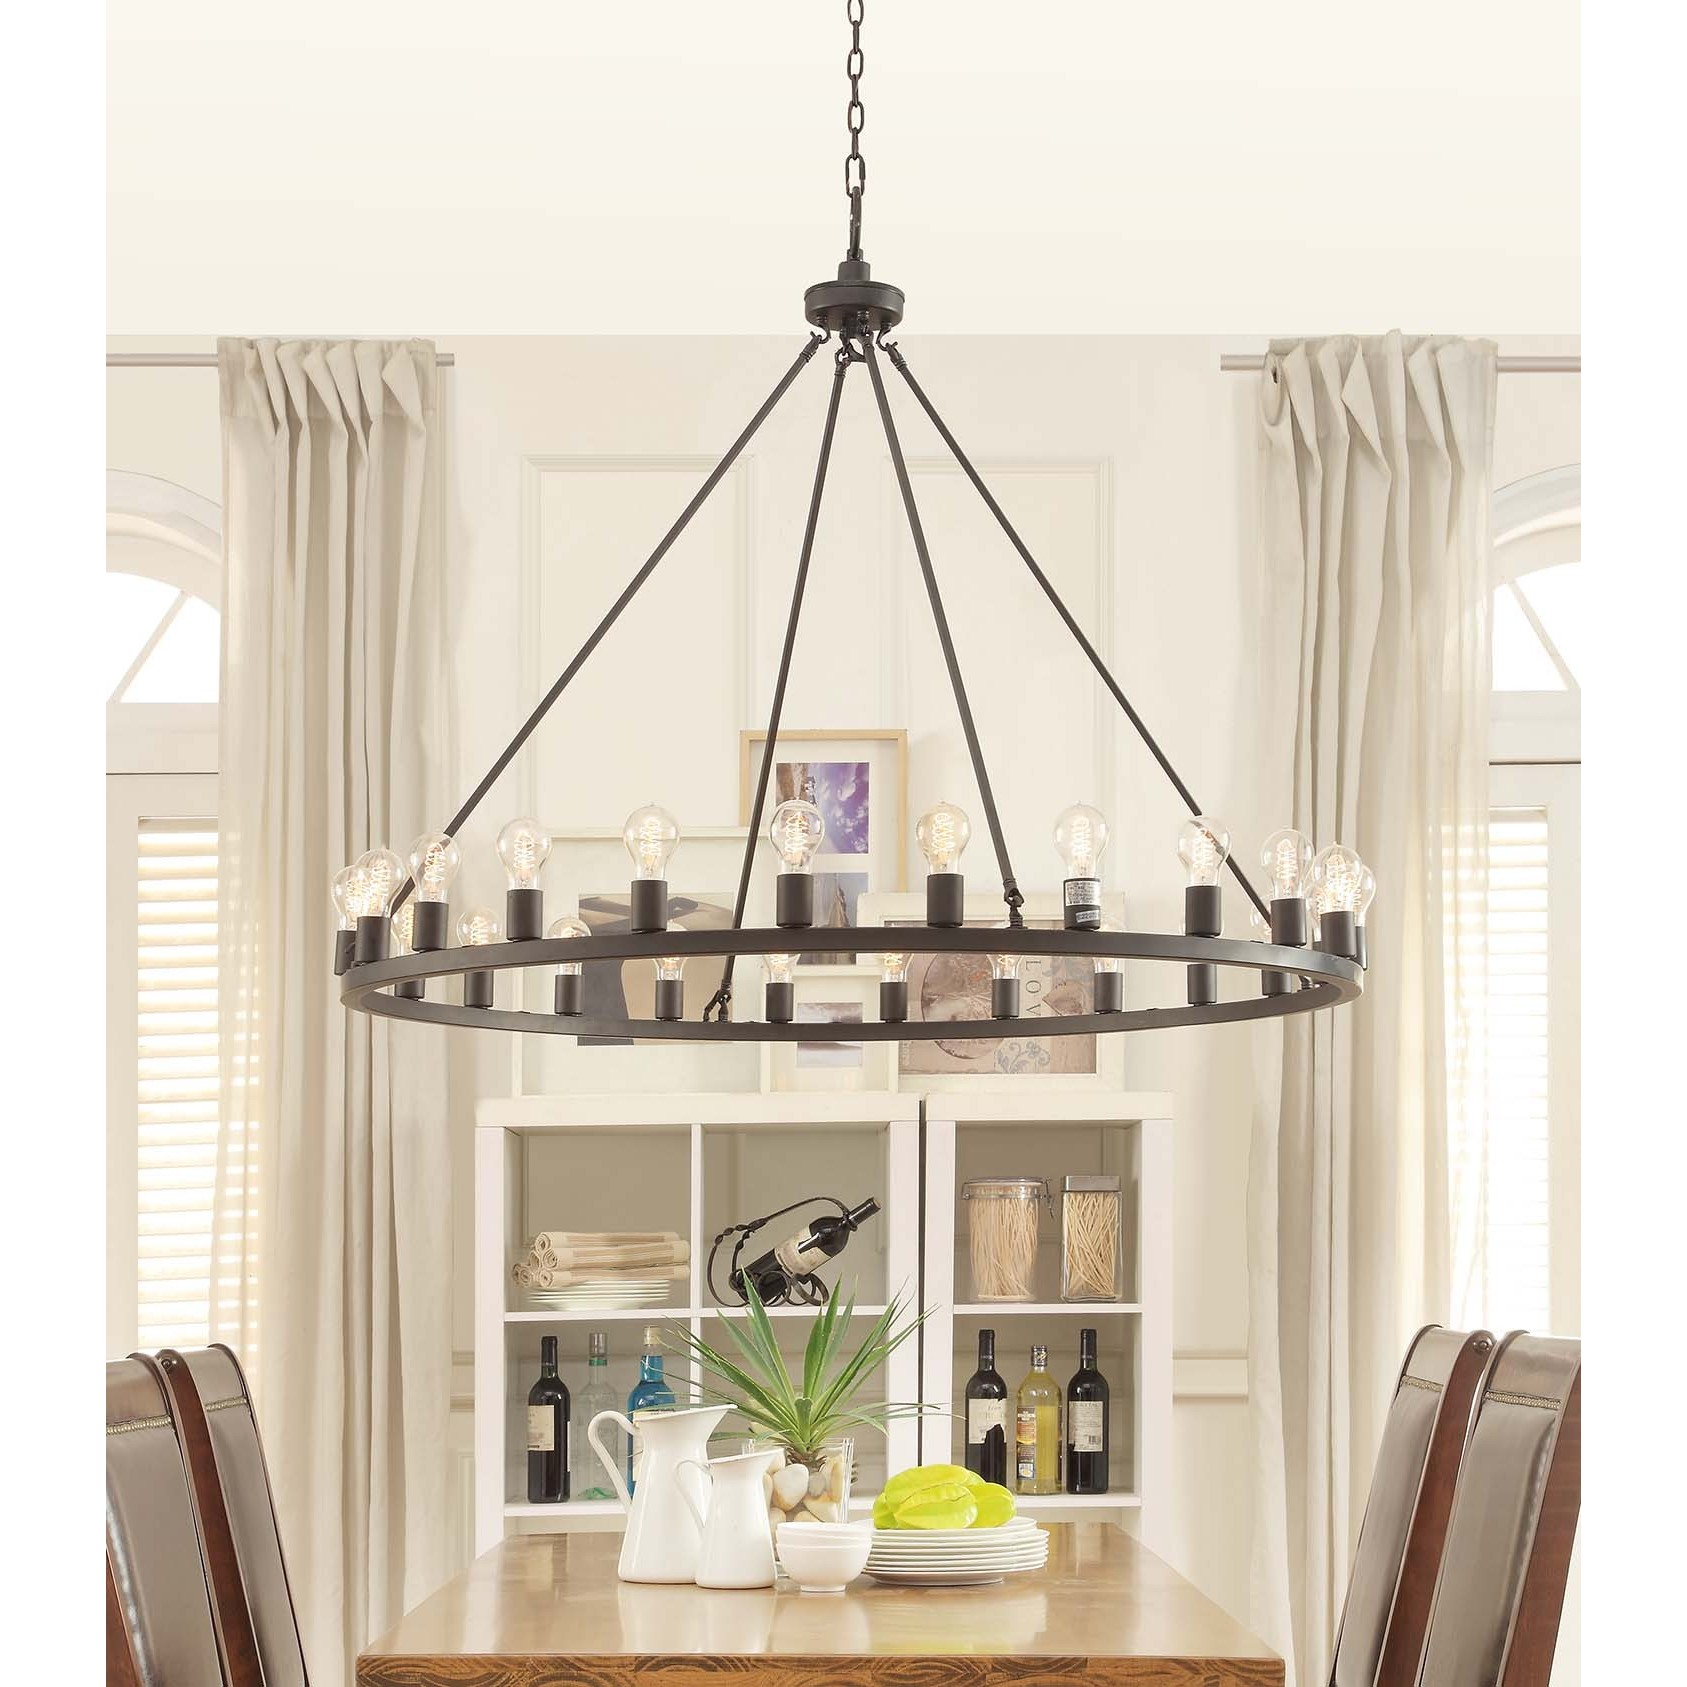 Chandelier With Edison Bulbs: Round Bronze Chandelier Large 48 Inch Wide 24 Light Edison